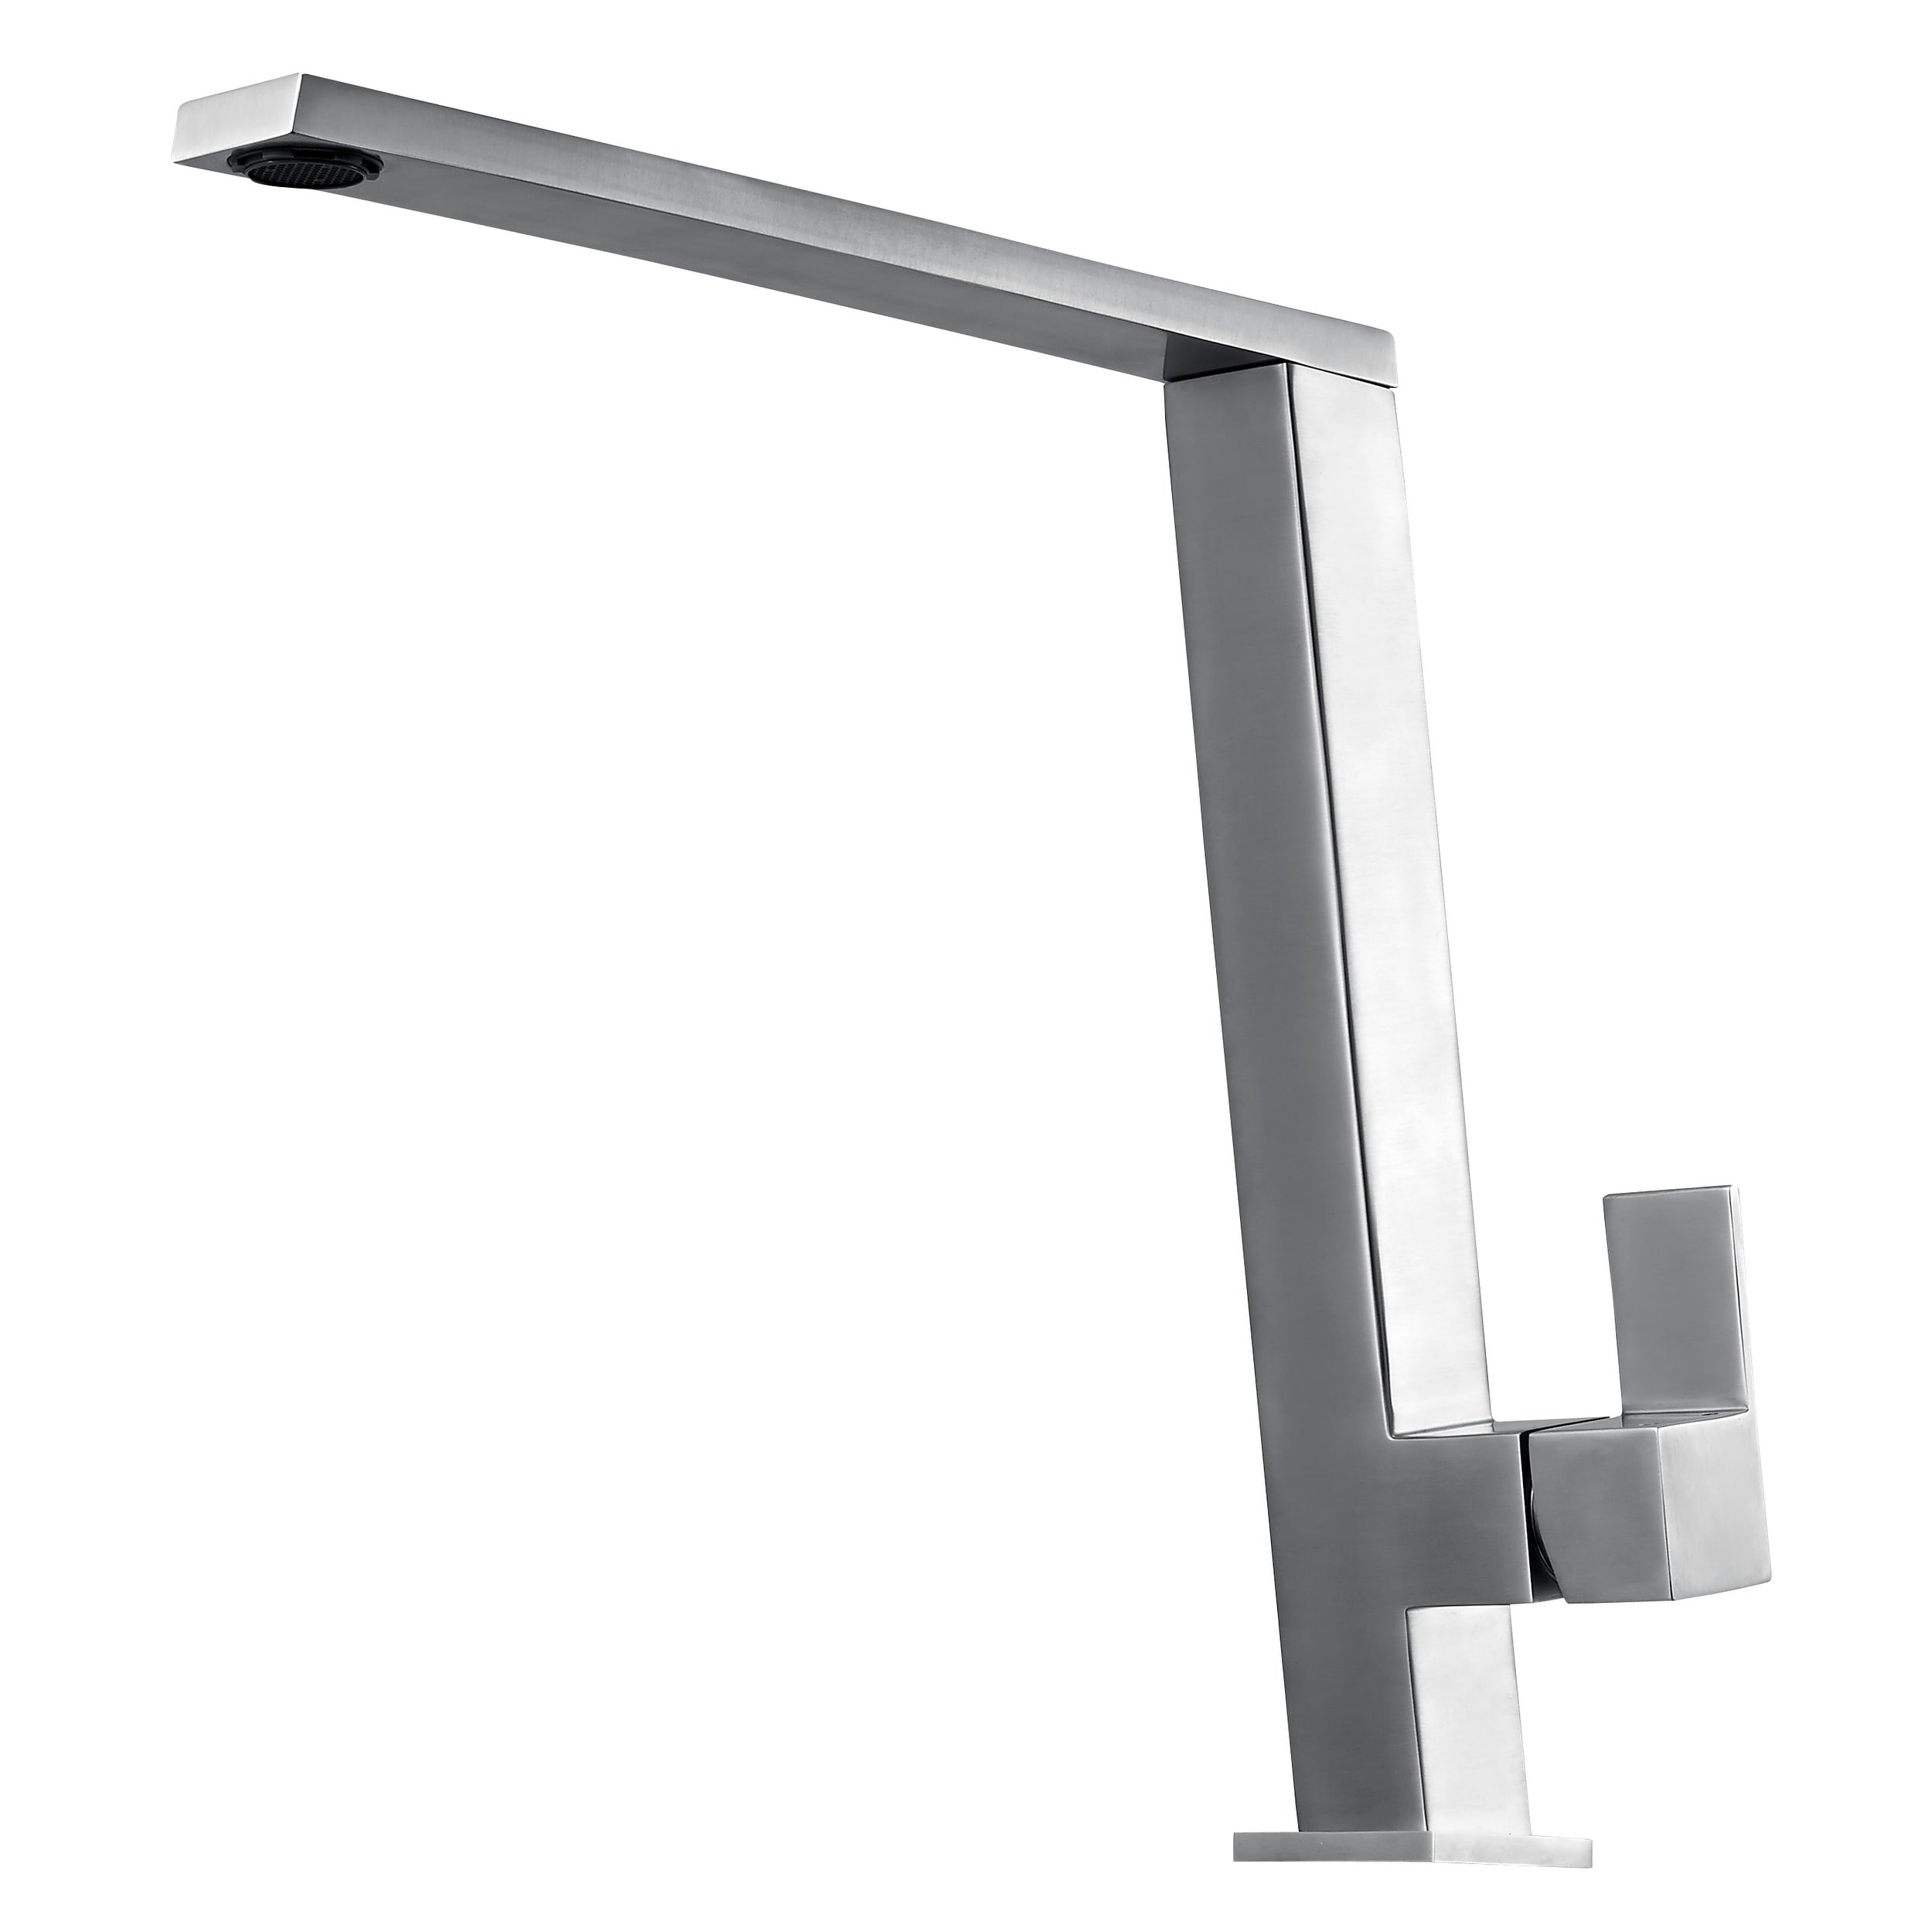 Alfi Brand AB2047 BSS Fancy Square Brushed Stainless Steel Kitchen Faucet